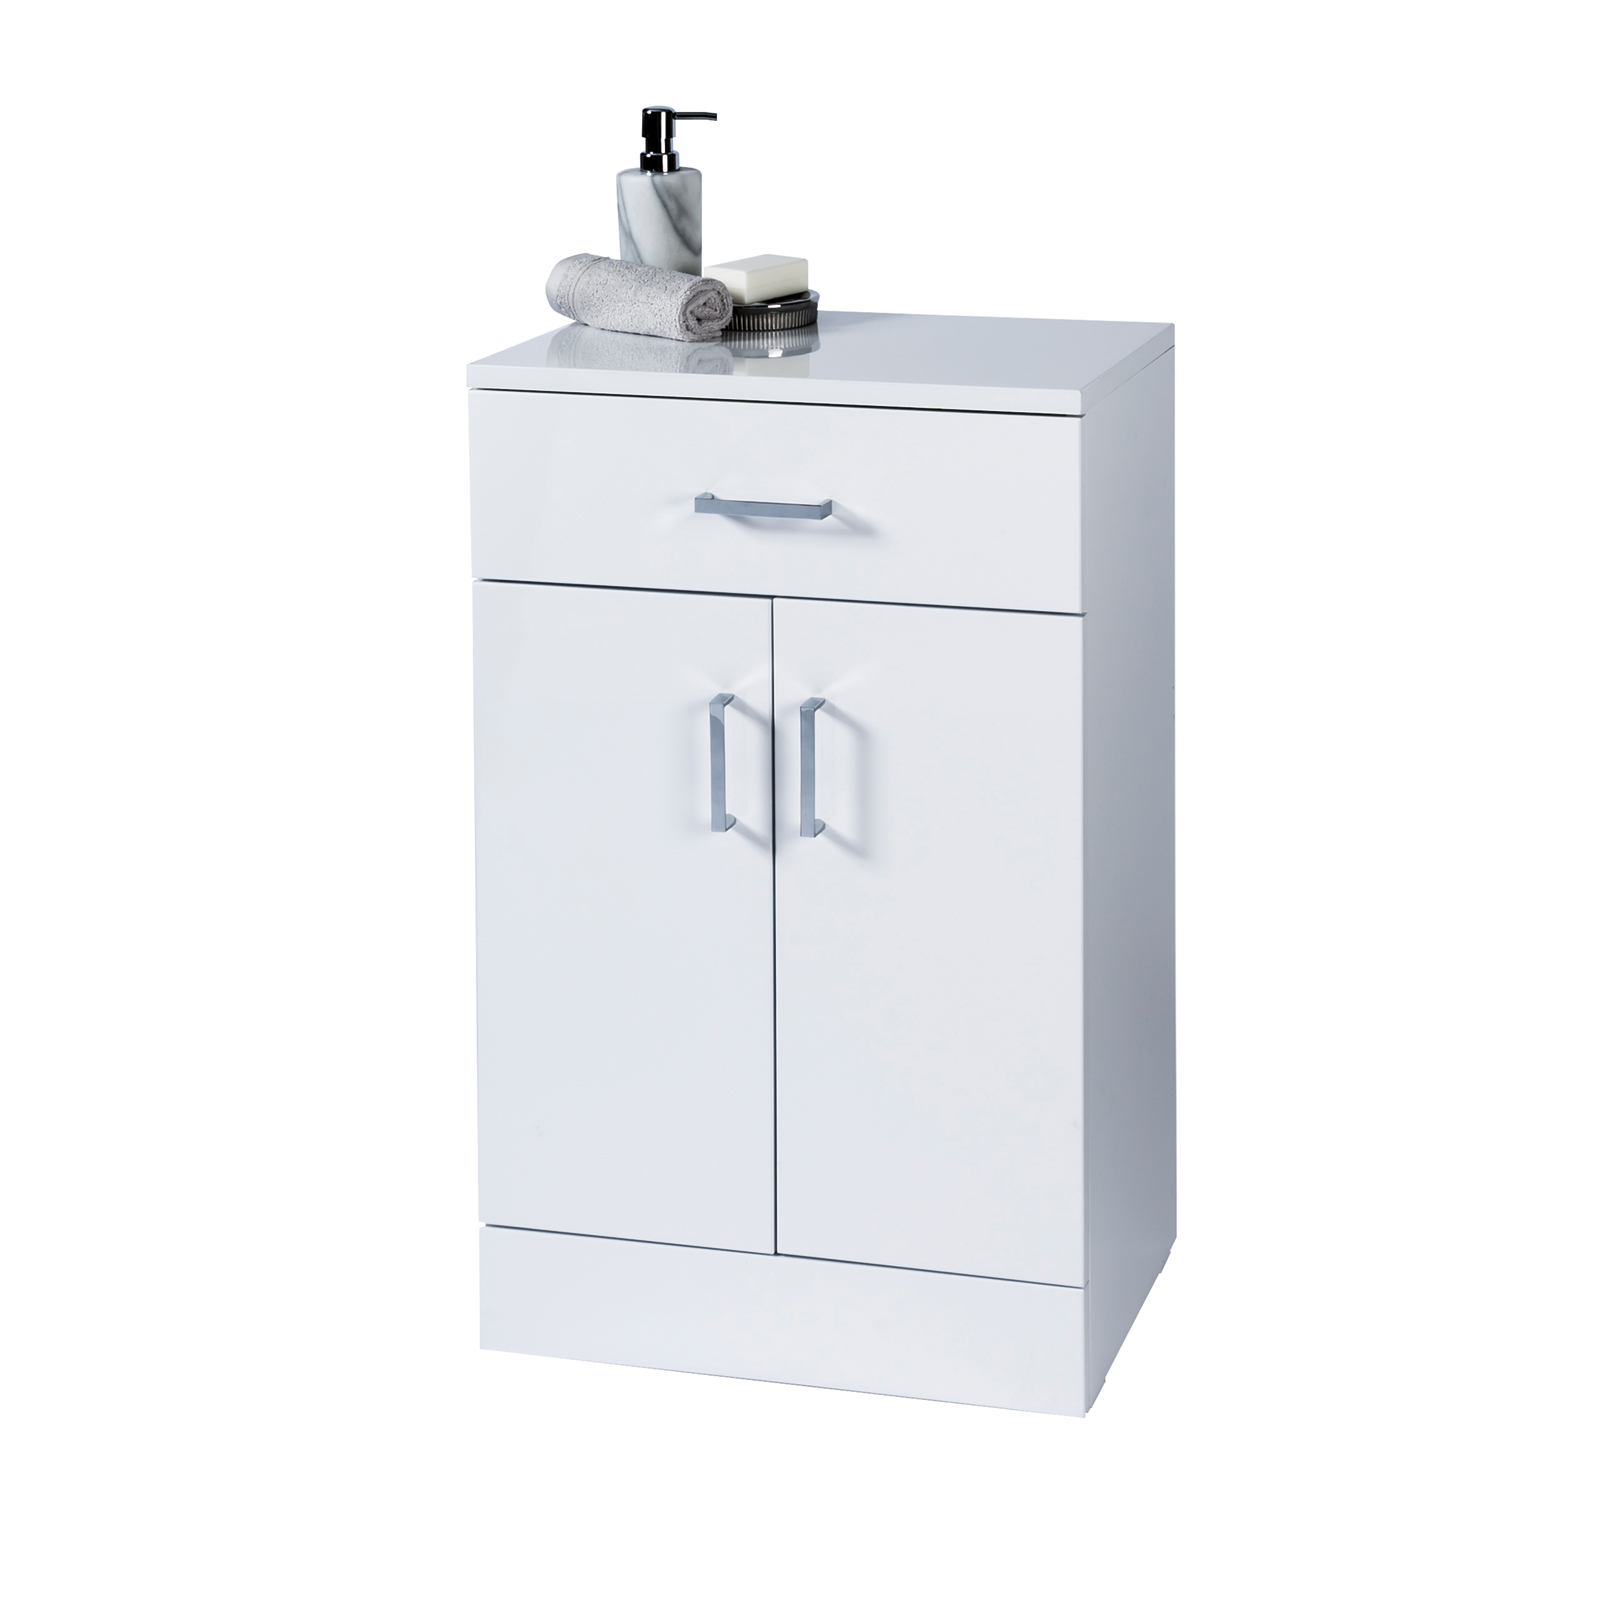 White High Gloss Double Door Wall Mounted Bathroom Storage Cabinet Shelves